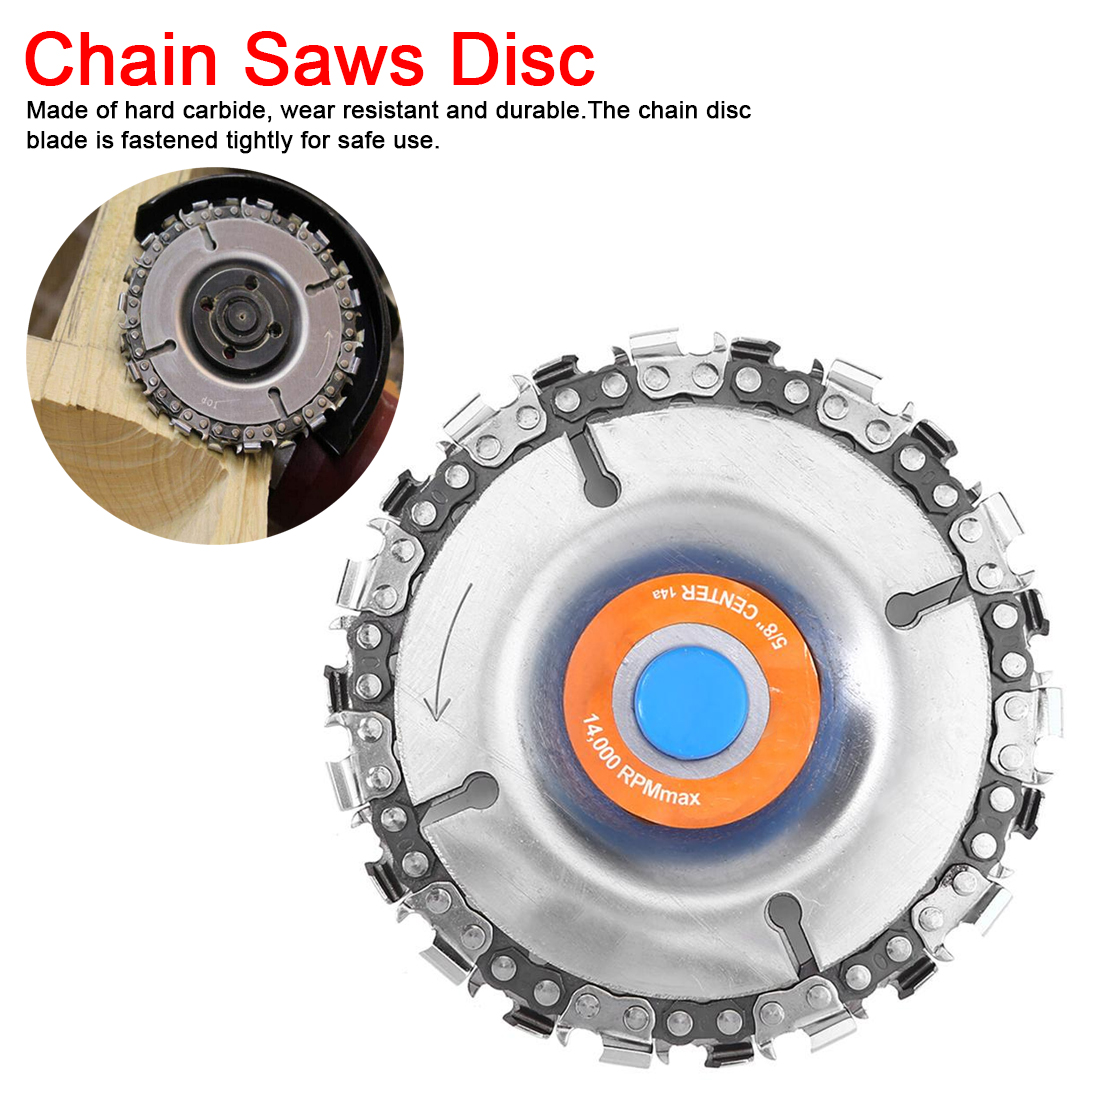 4 Inch Wood Carving Disc Cut Chain 22 Tooth Grinder Disc Fine Chainsaw Set With Chains For 100/115 Angle Grinder Wooking Tools